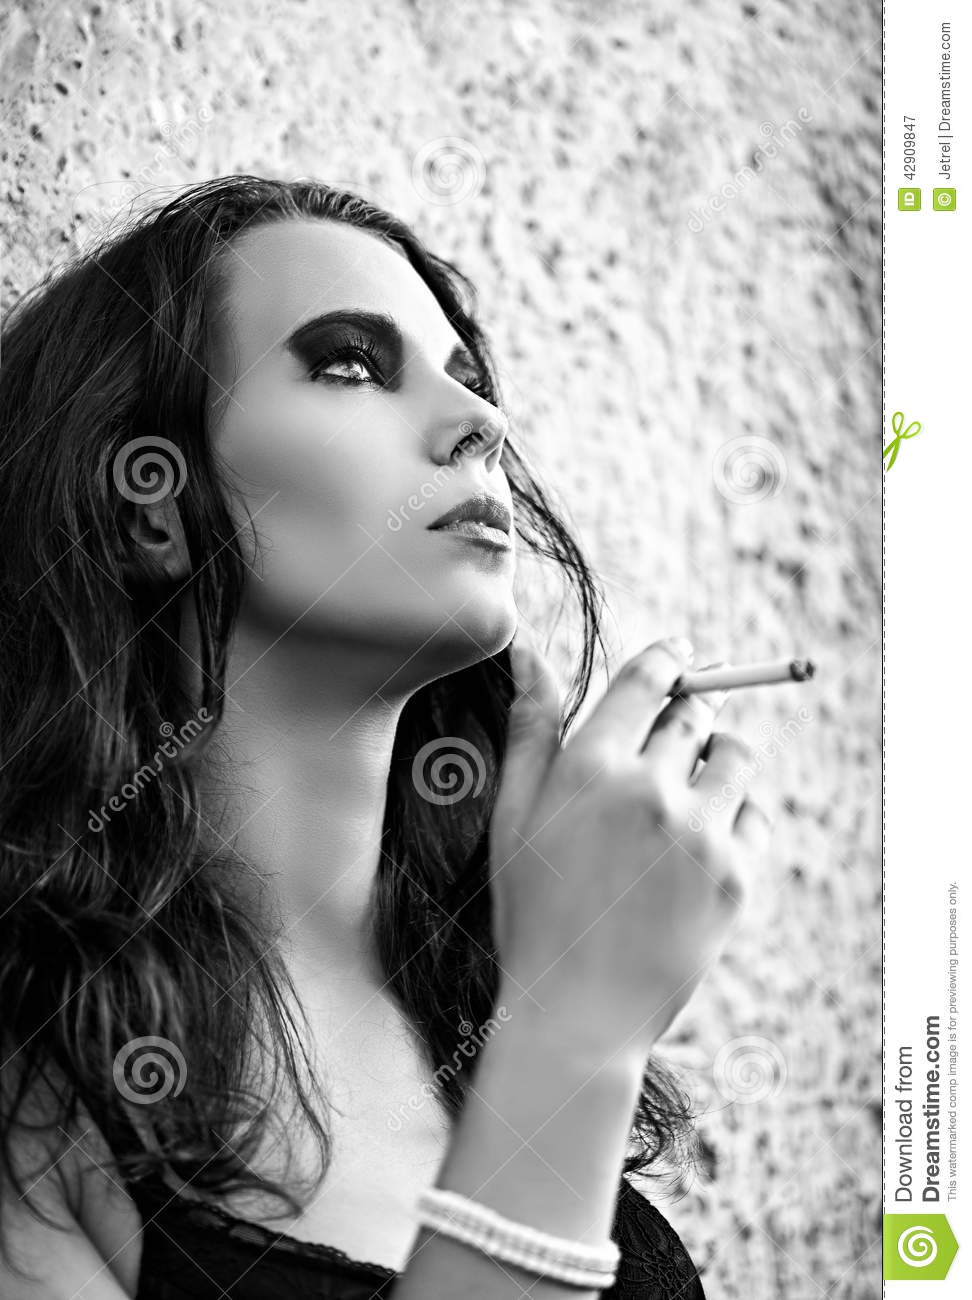 women smoking closeup actress - photo #44